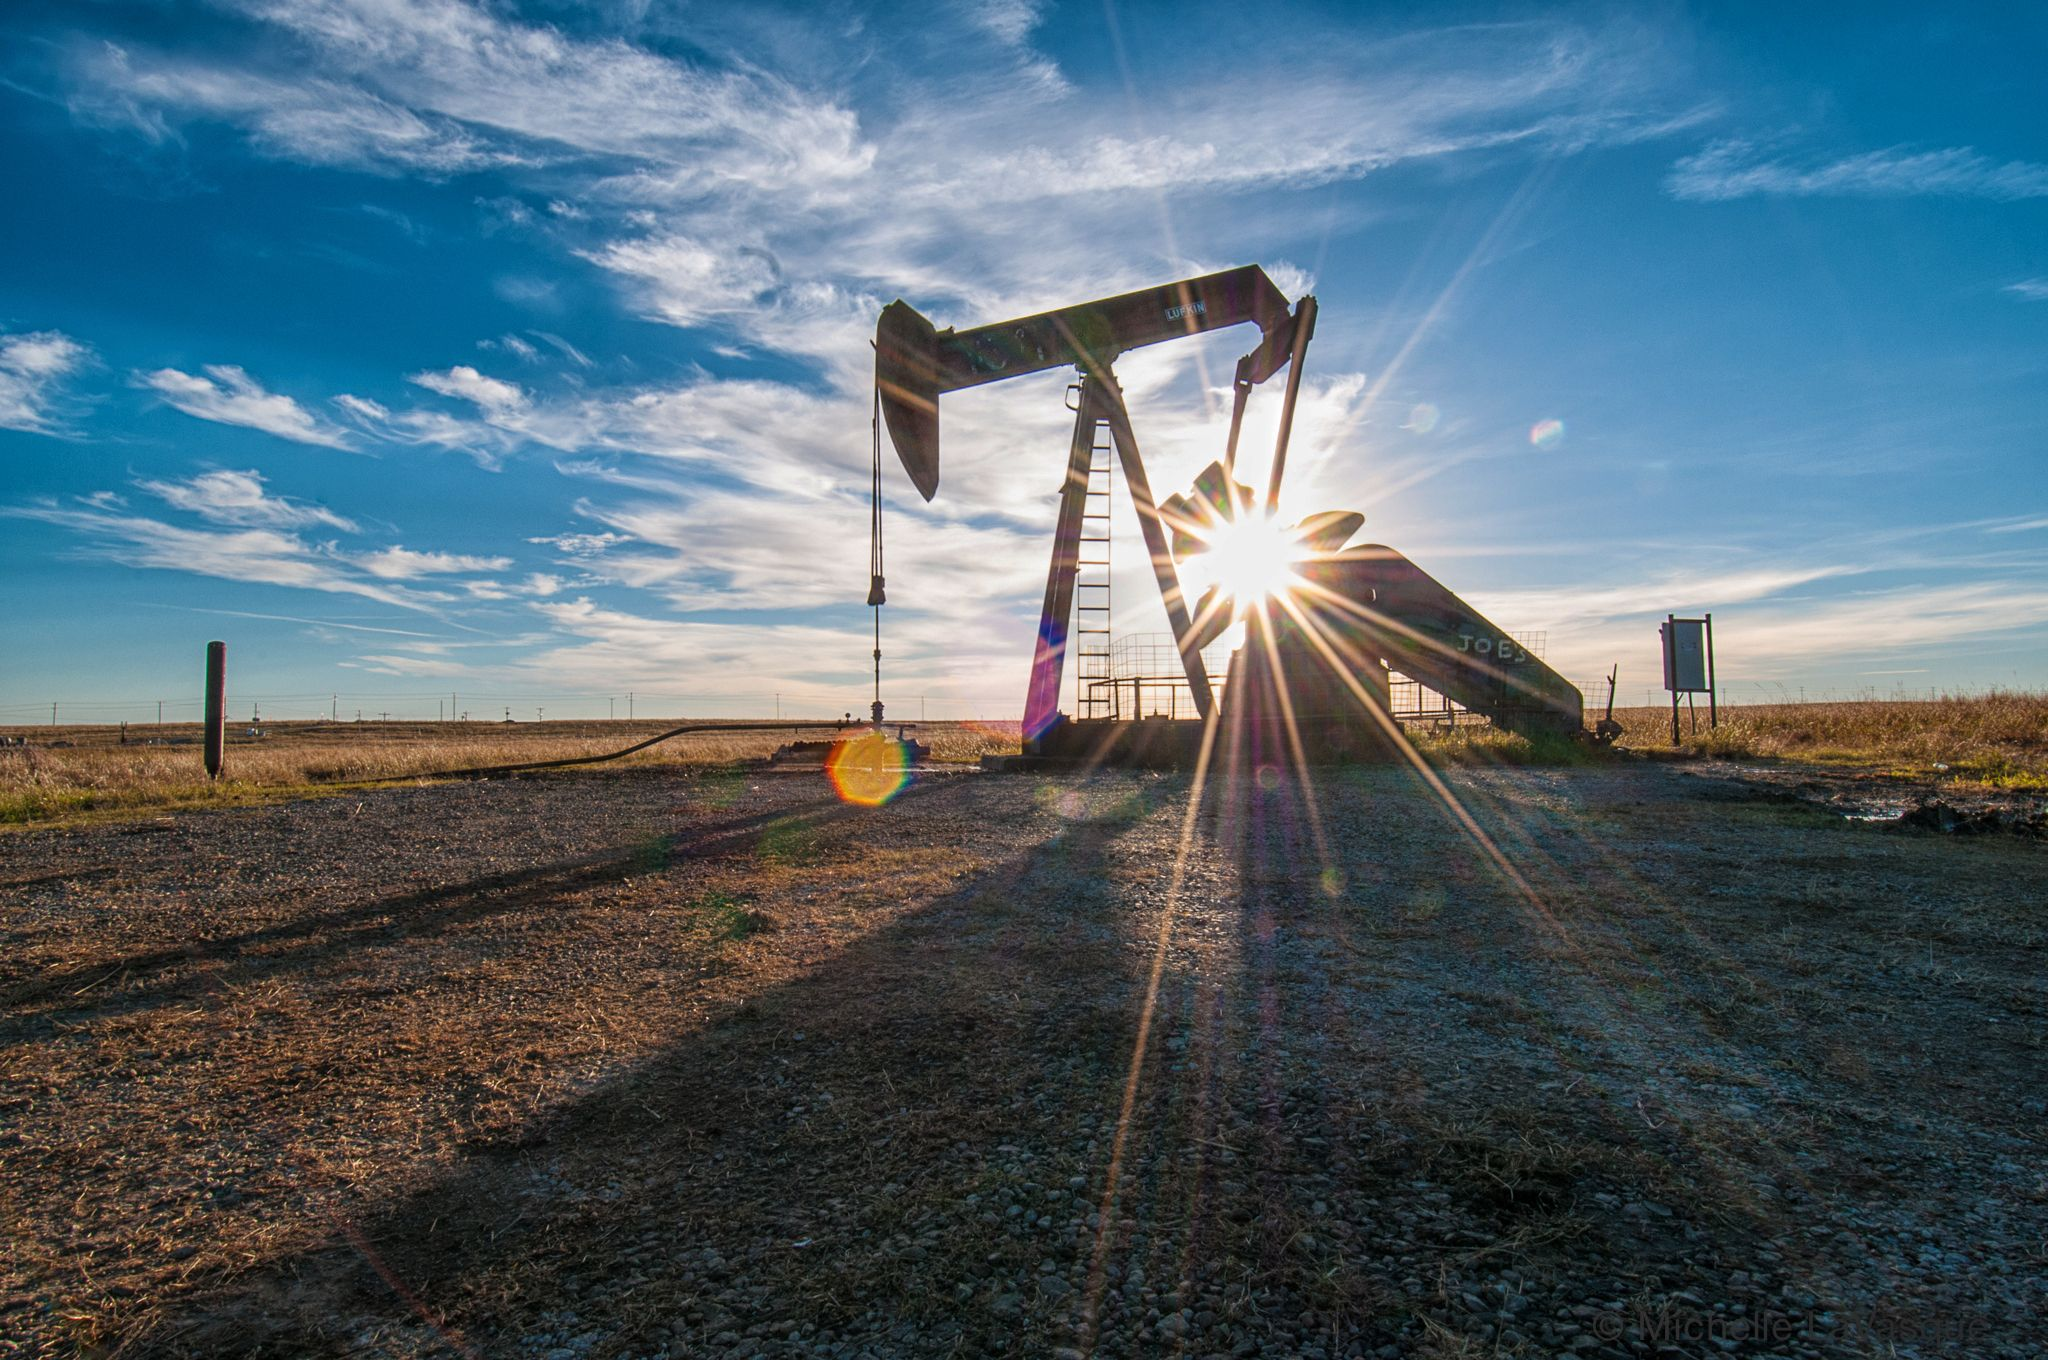 Pumpjack at well site